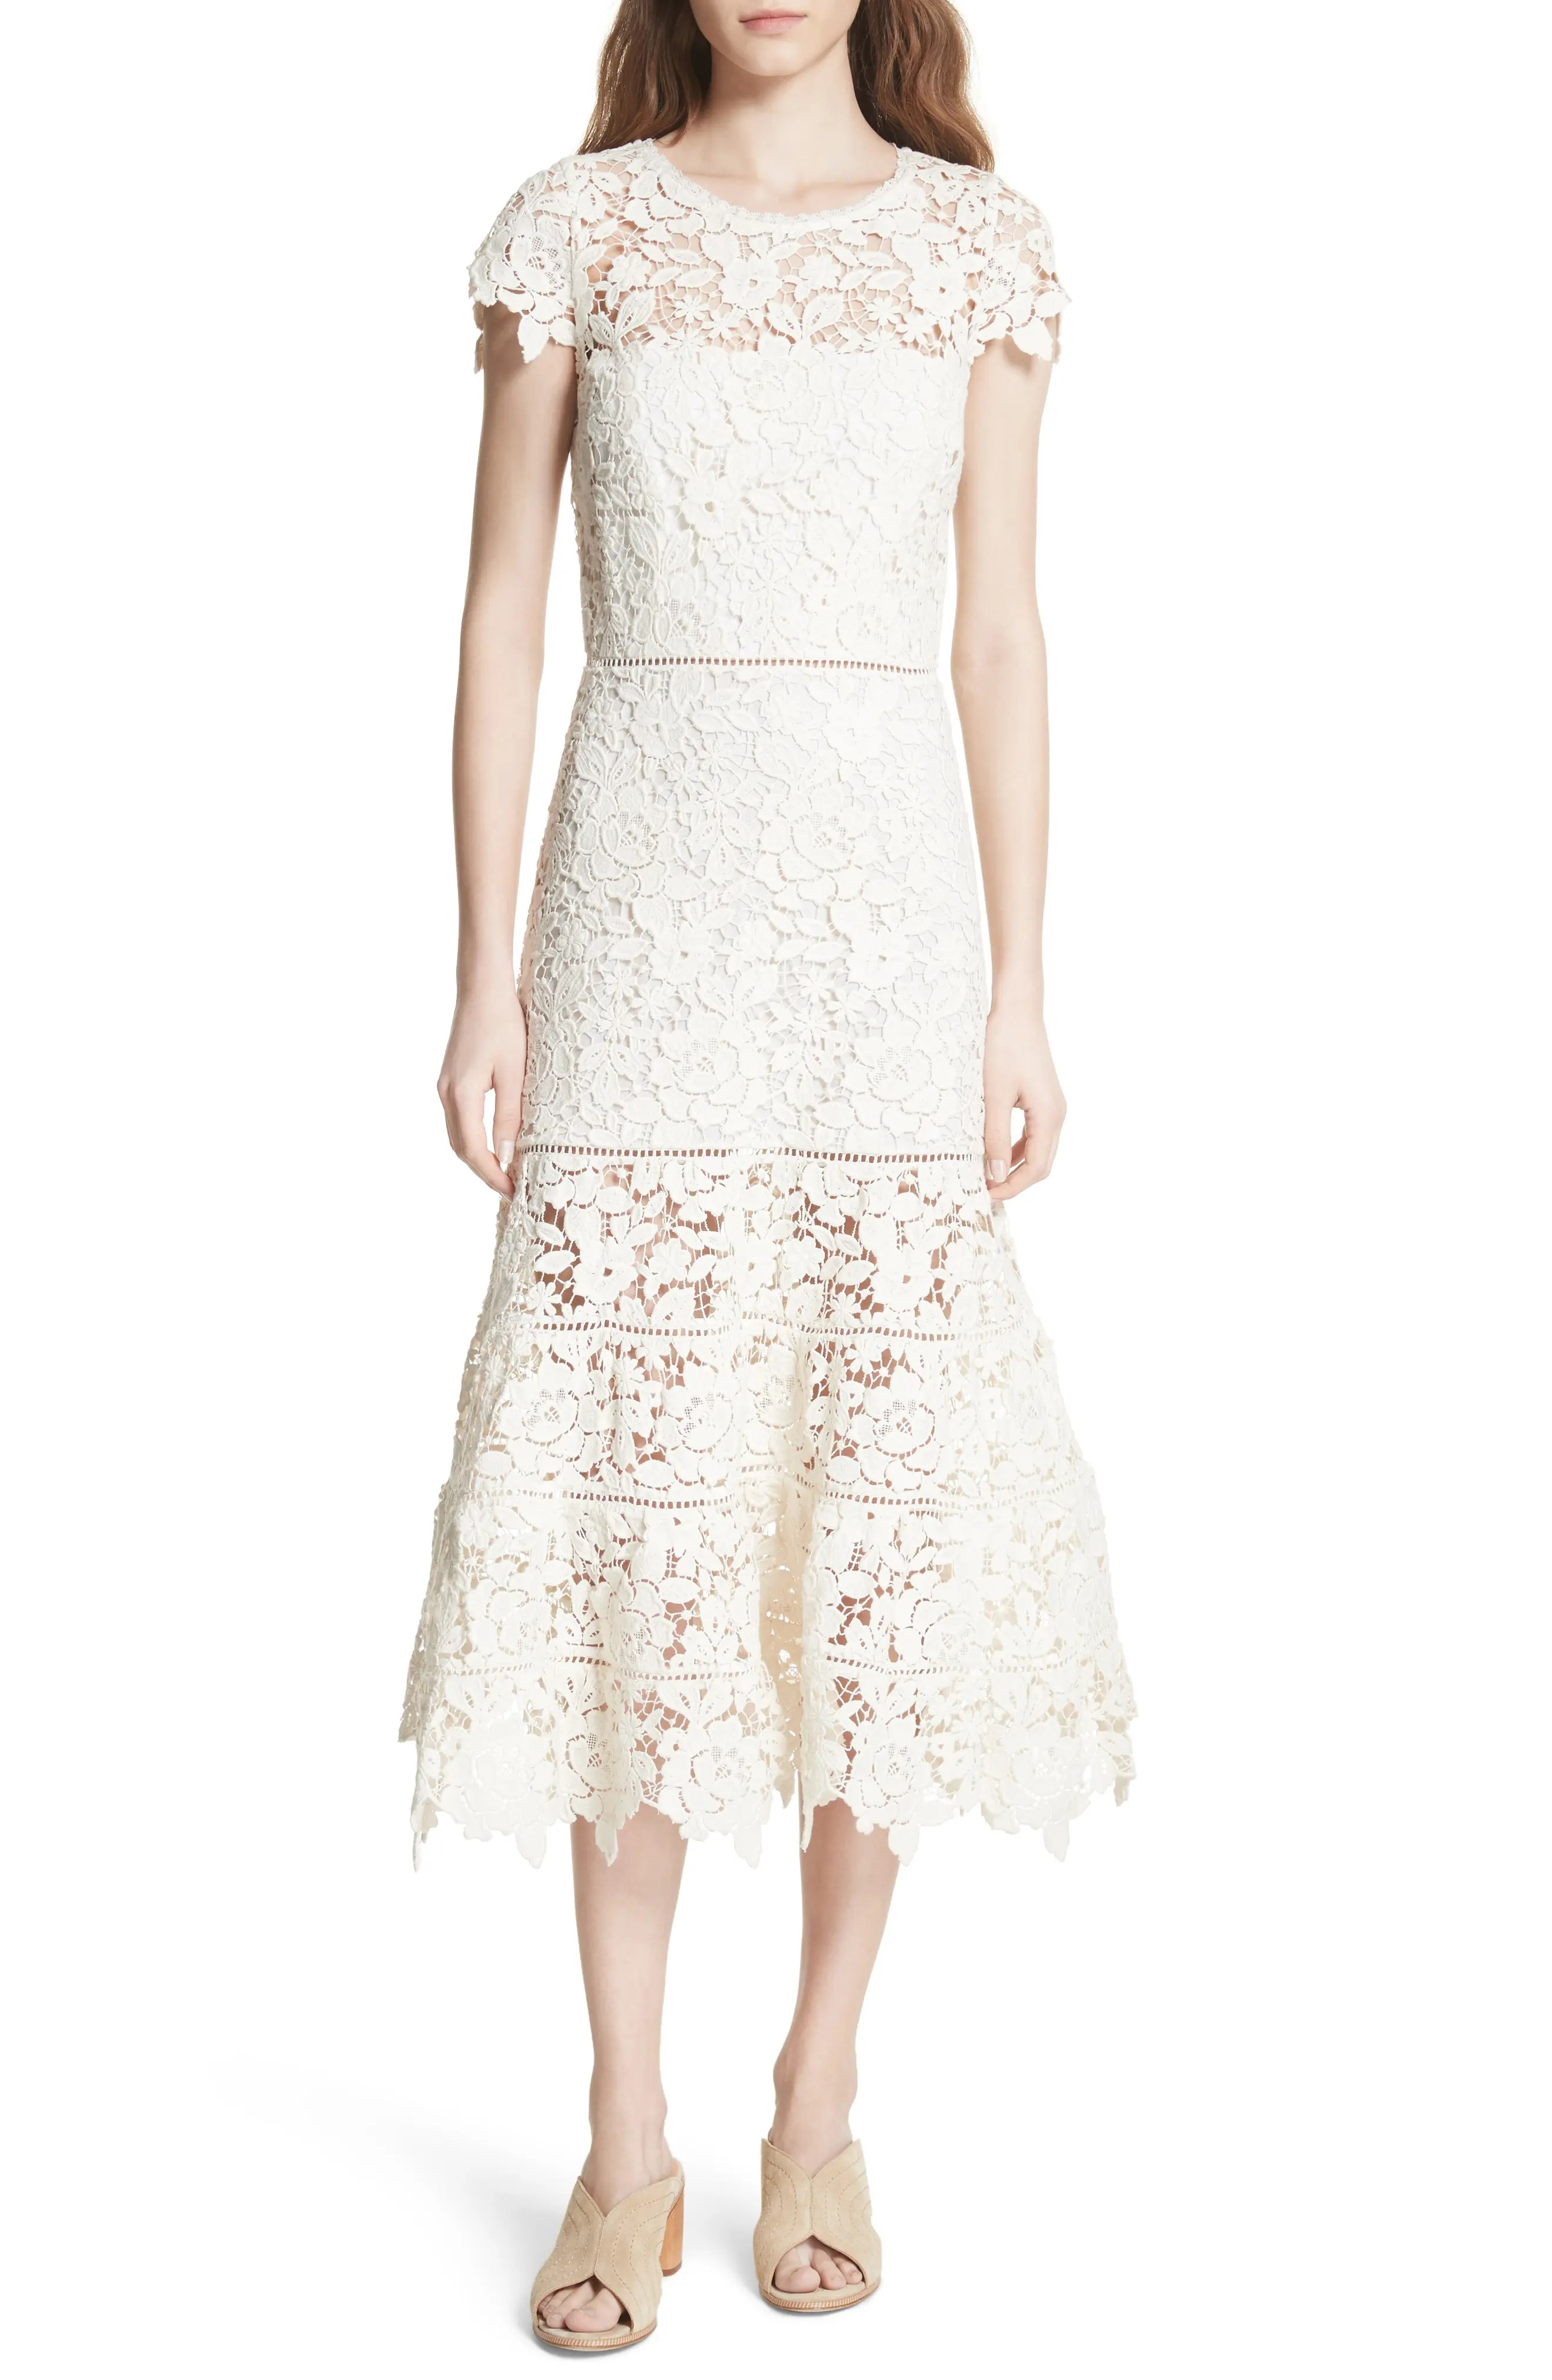 Joie celedonia scallop lace dress also clothing nordstrom rh shoprdstrom